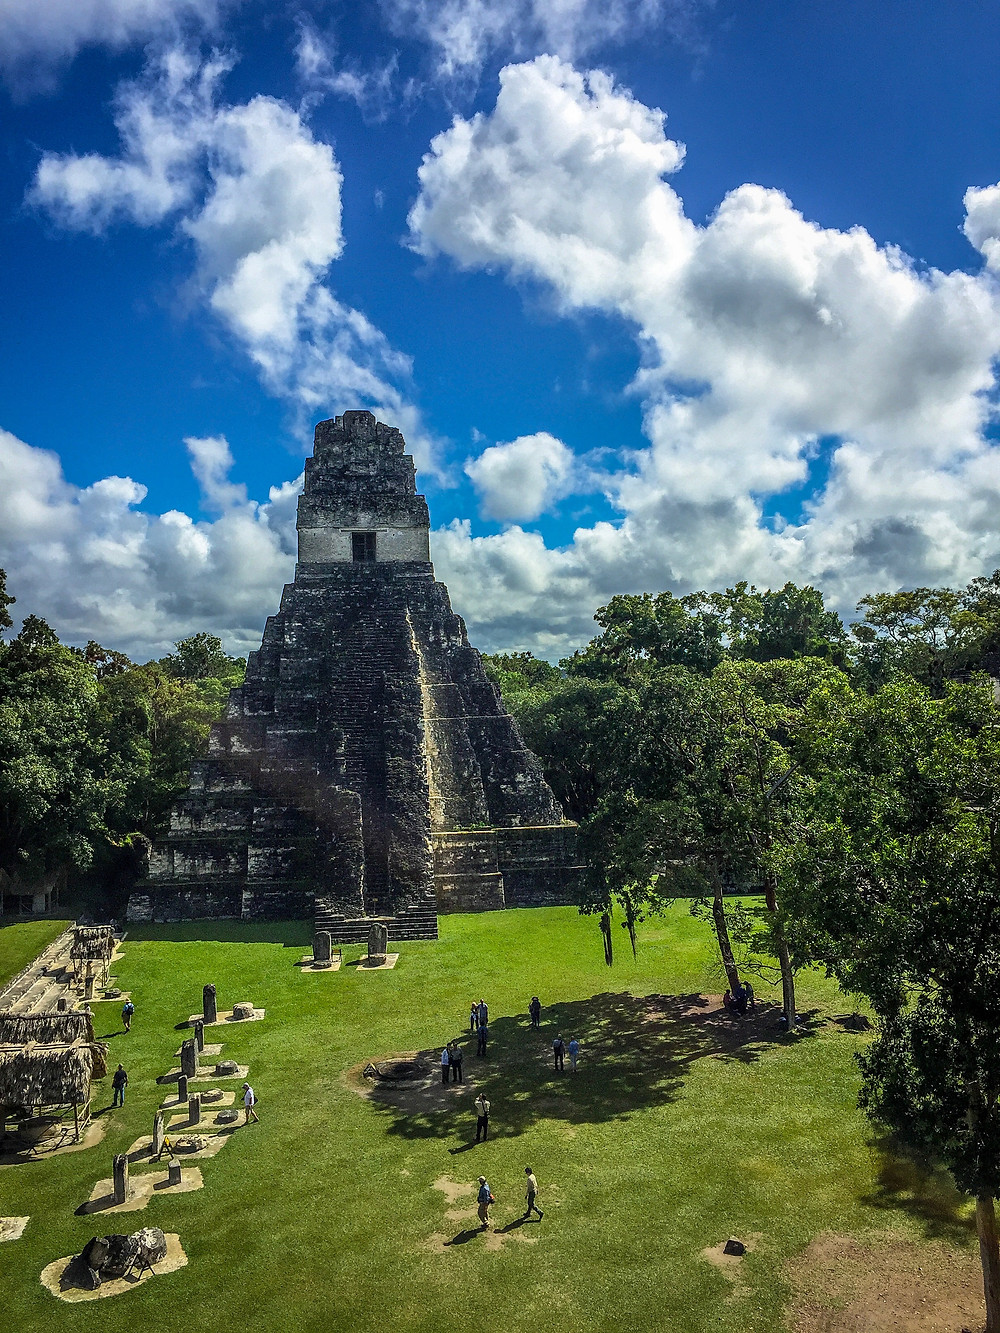 Stunning photo of Tikal ruins with white clouds in the background